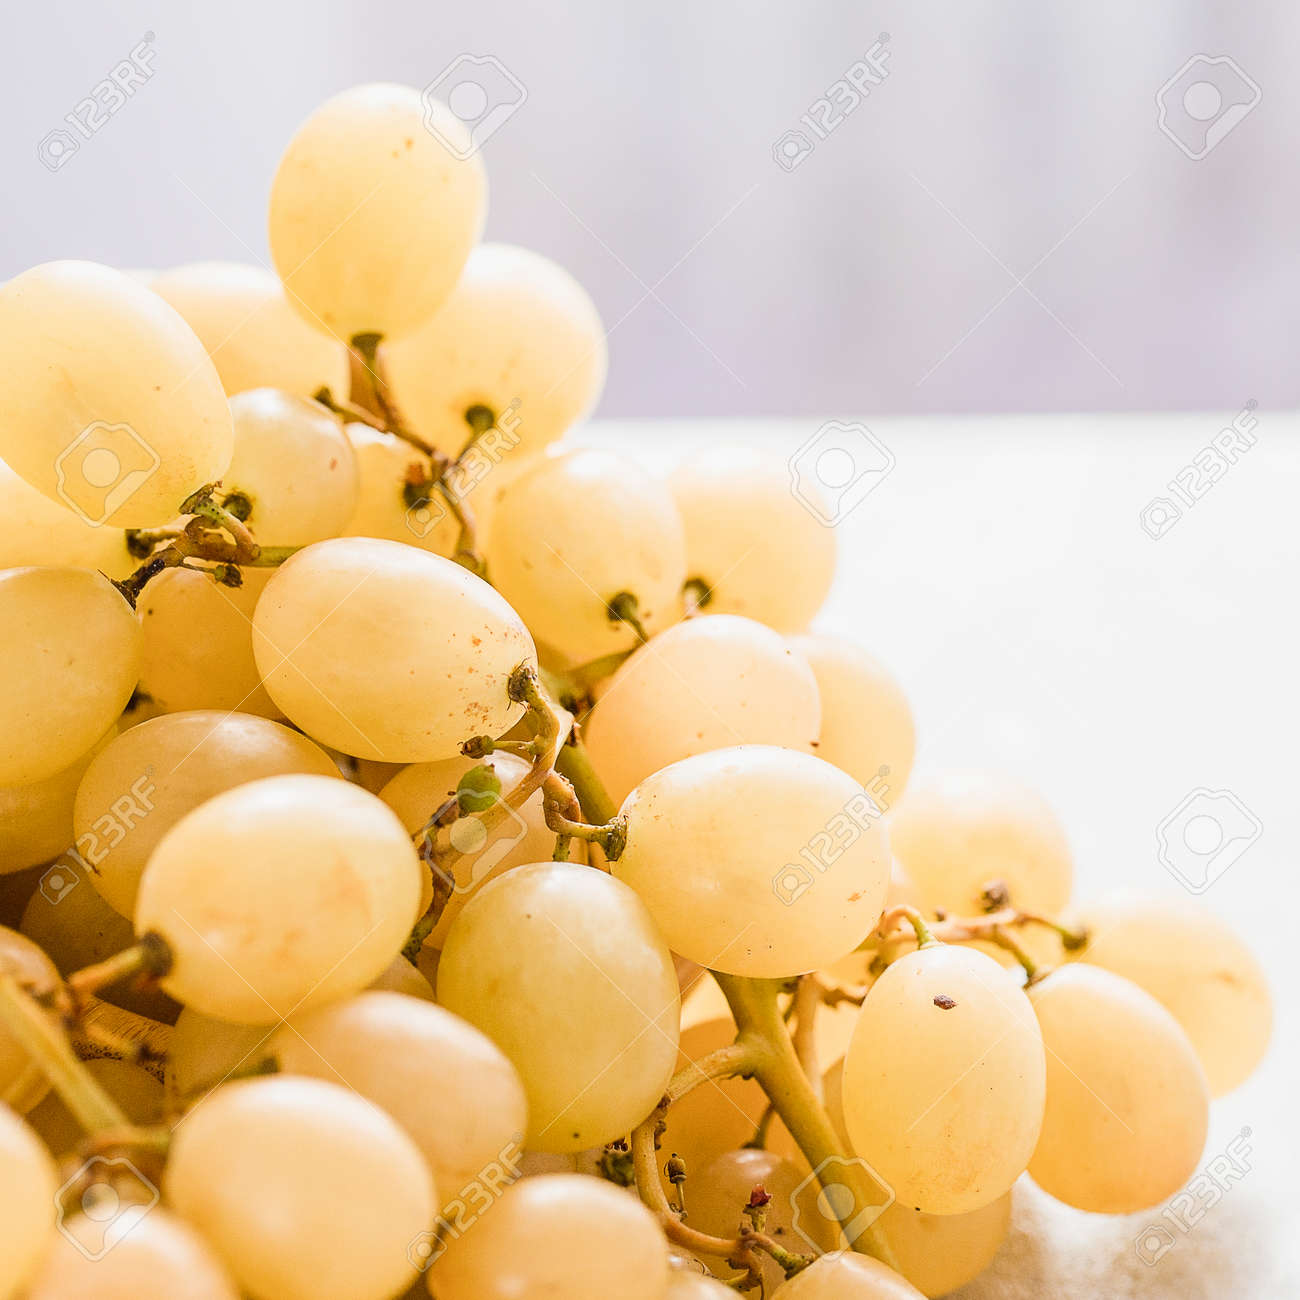 white grapes in a basket on a table - 166239703